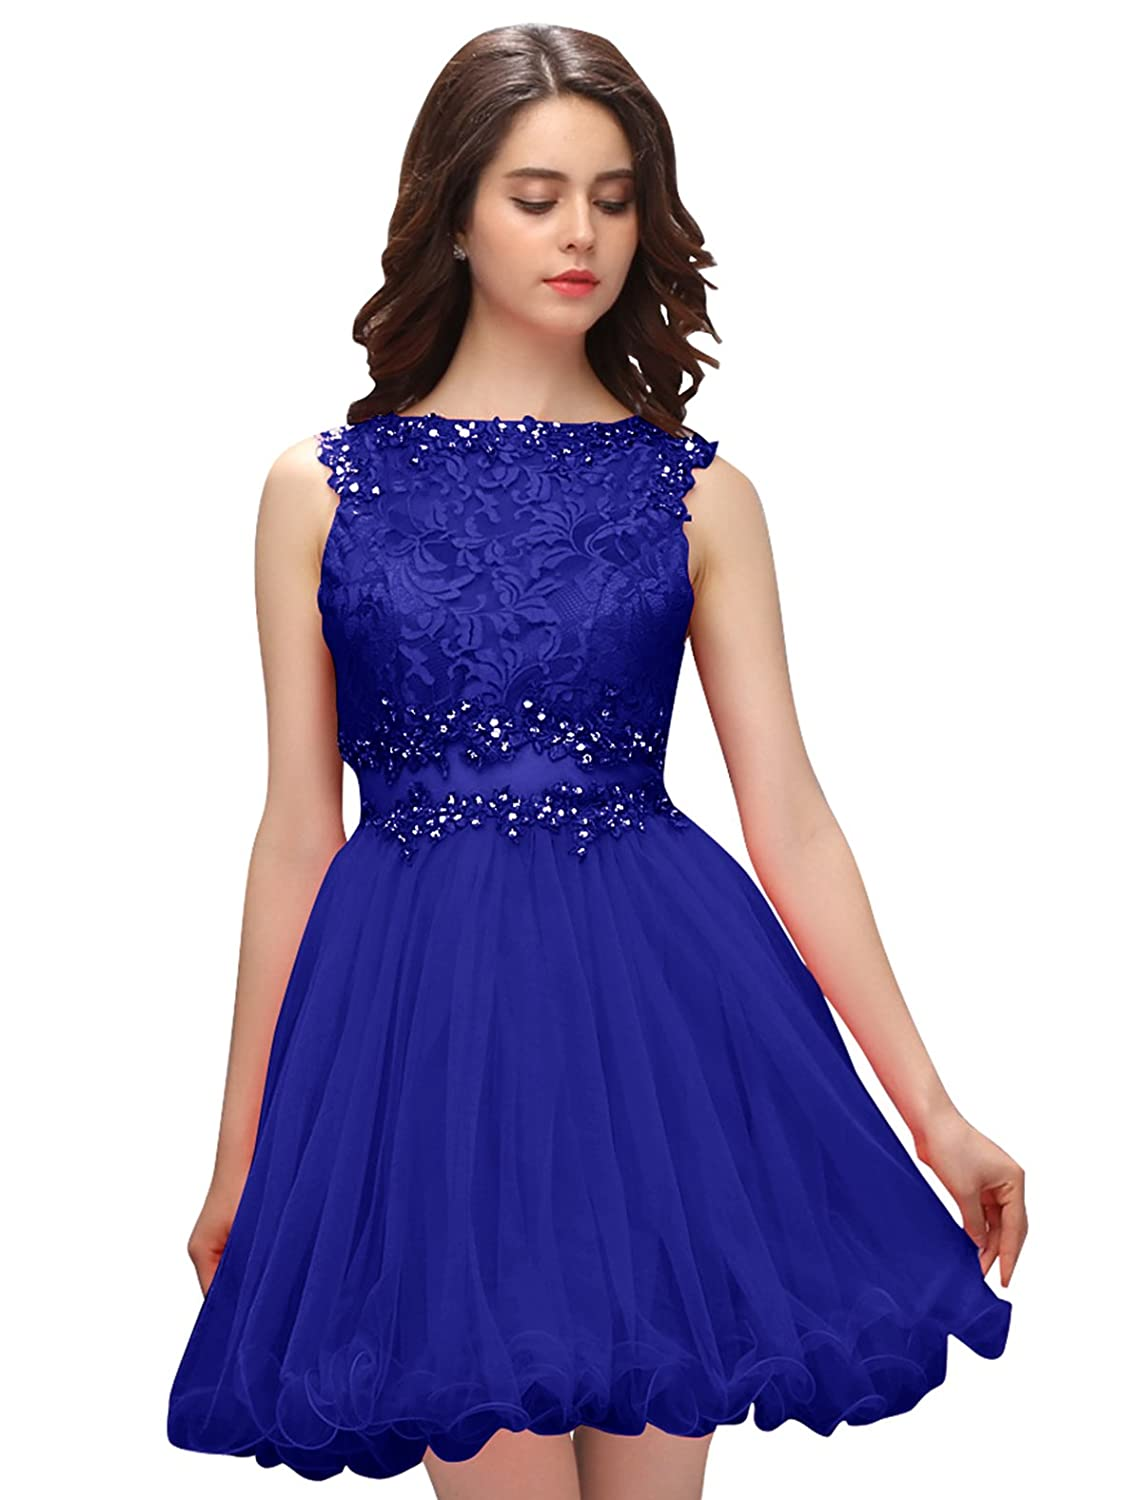 Dressystar Short Lace Homecoming Dresses Beaded Illusion Neckline and Waist Prom Gowns